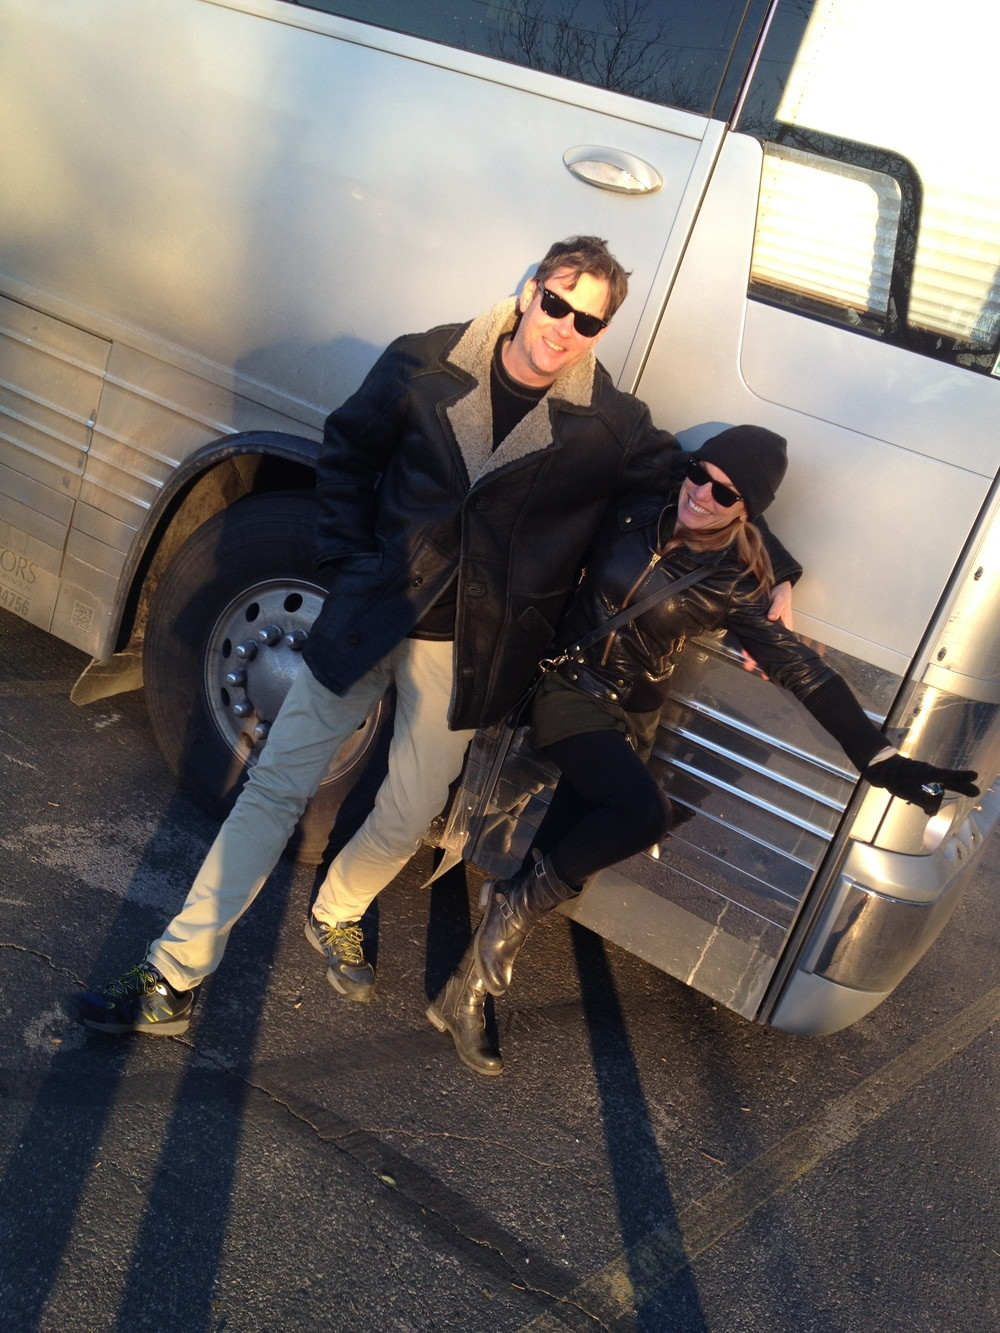 jane n trav outside bus.jpg